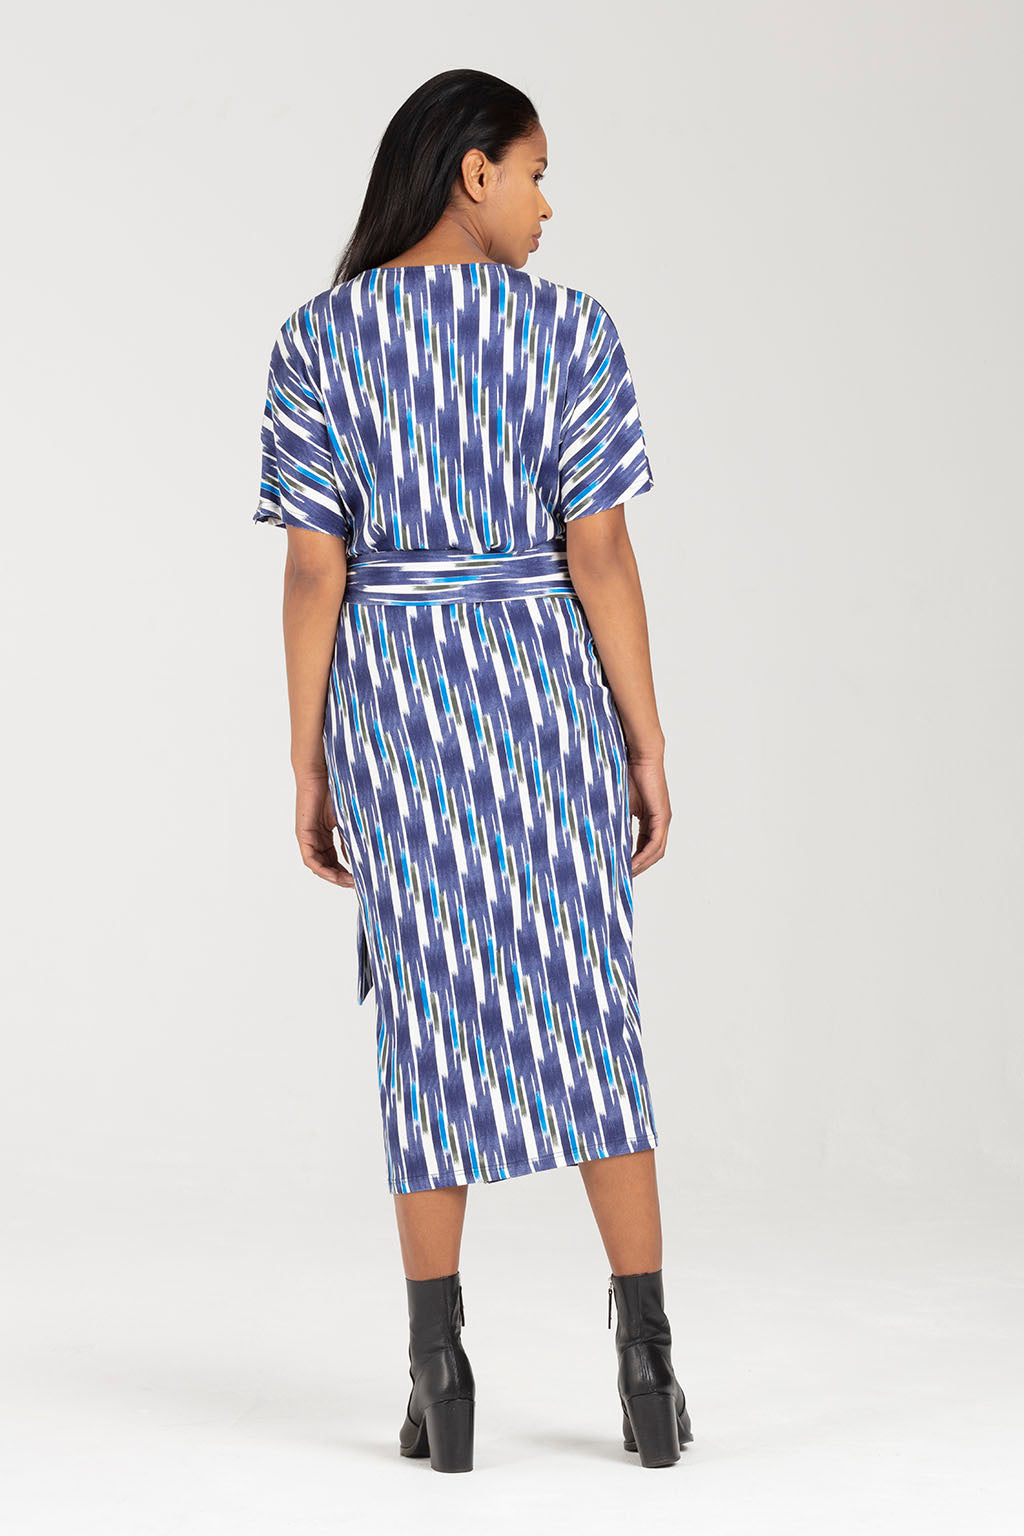 Breastfeeding Party Dress, Wrap Dress in Vertical Stripe - Amelia by Sarka London - Back view